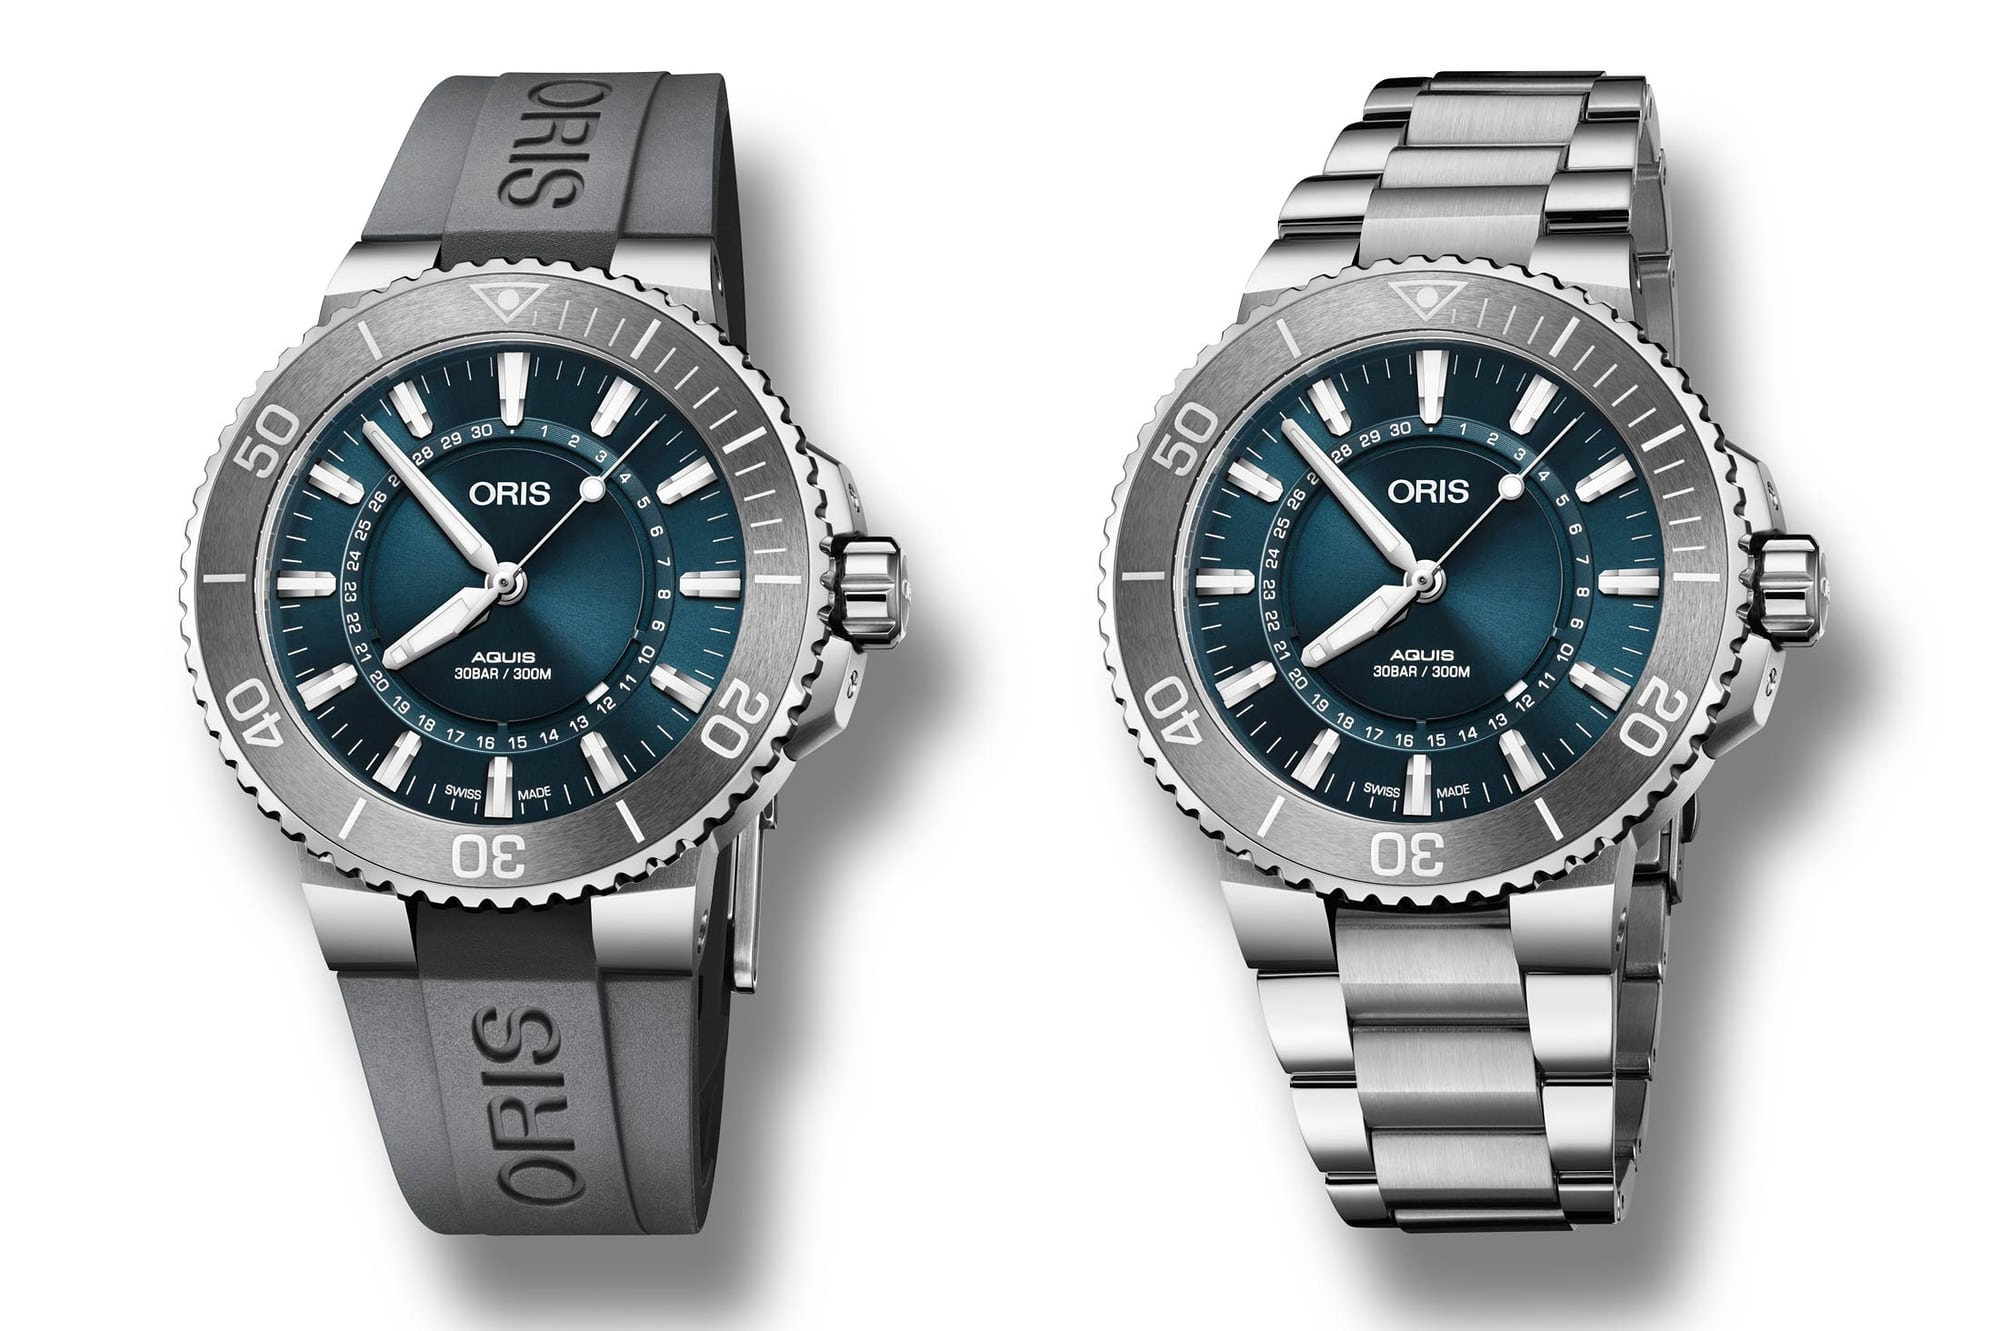 Introducing: The Oris 'Source Of Life' Limited Edition Introducing: The Oris 'Source Of Life' Limited Edition oris 5